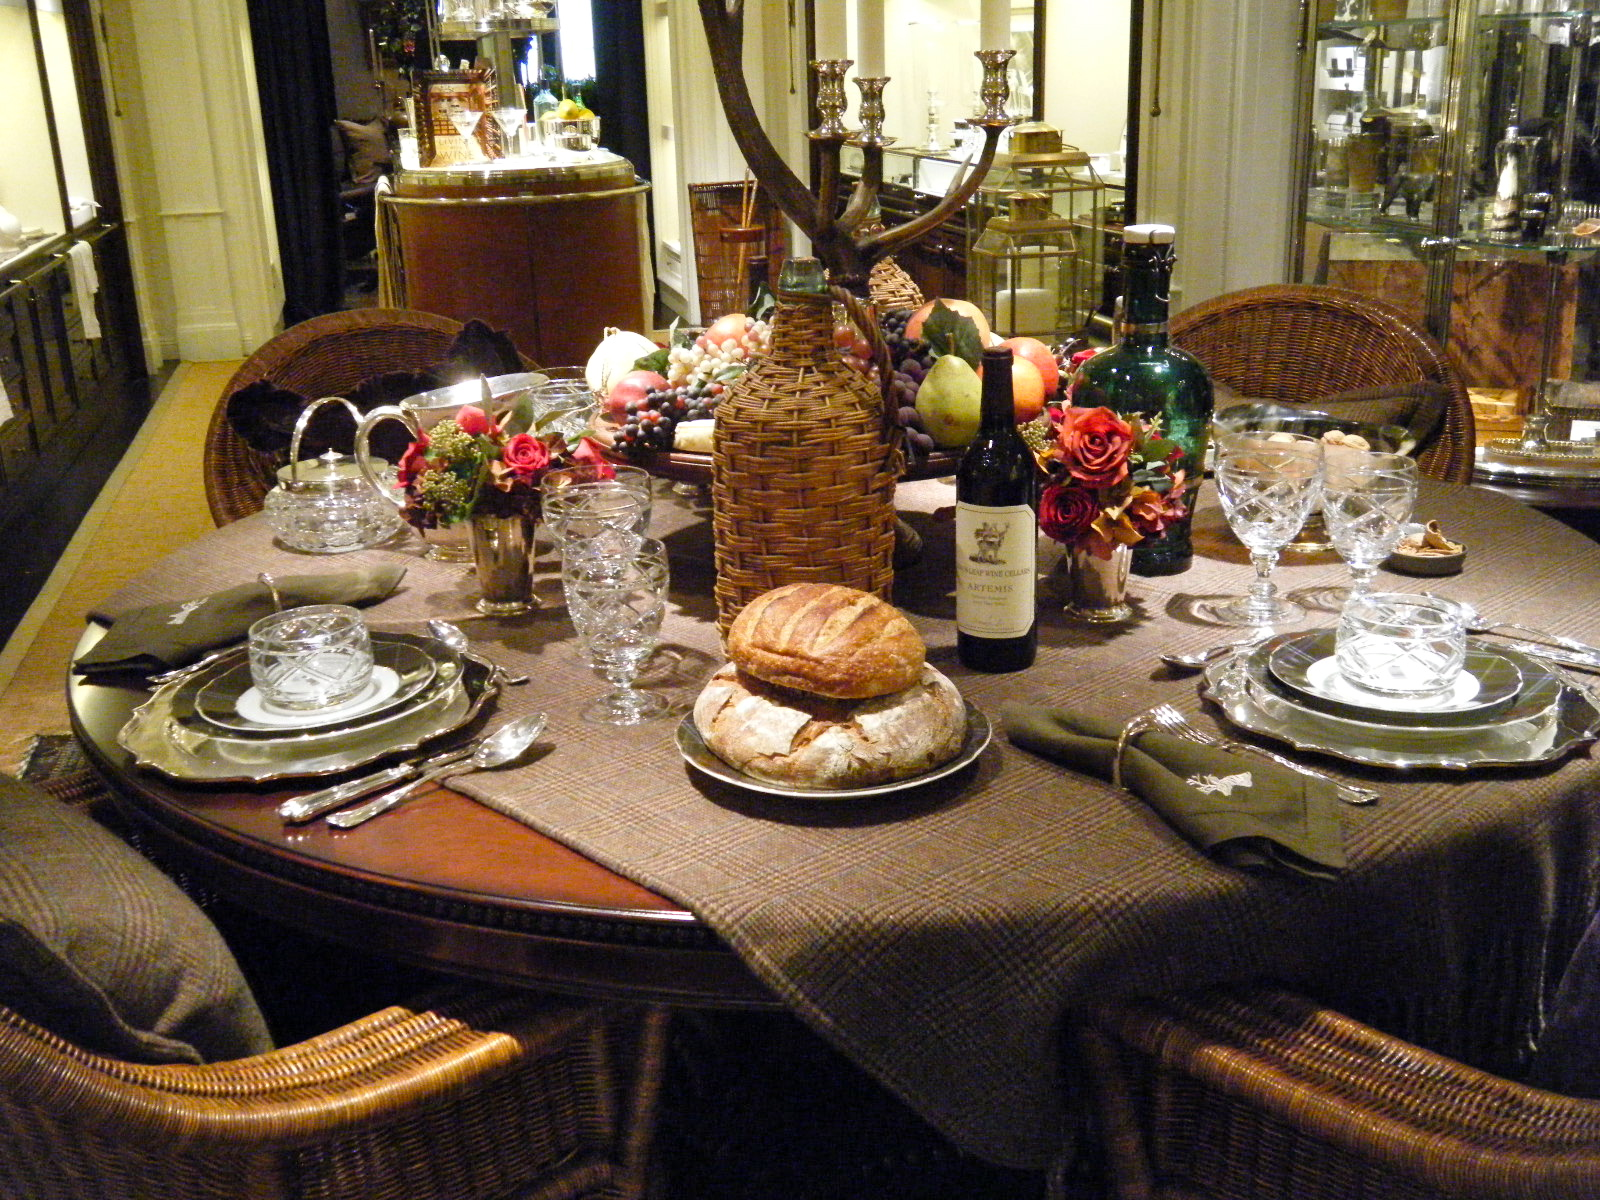 DSCF2461 - Ralph Lauren's Thanksgiving Table